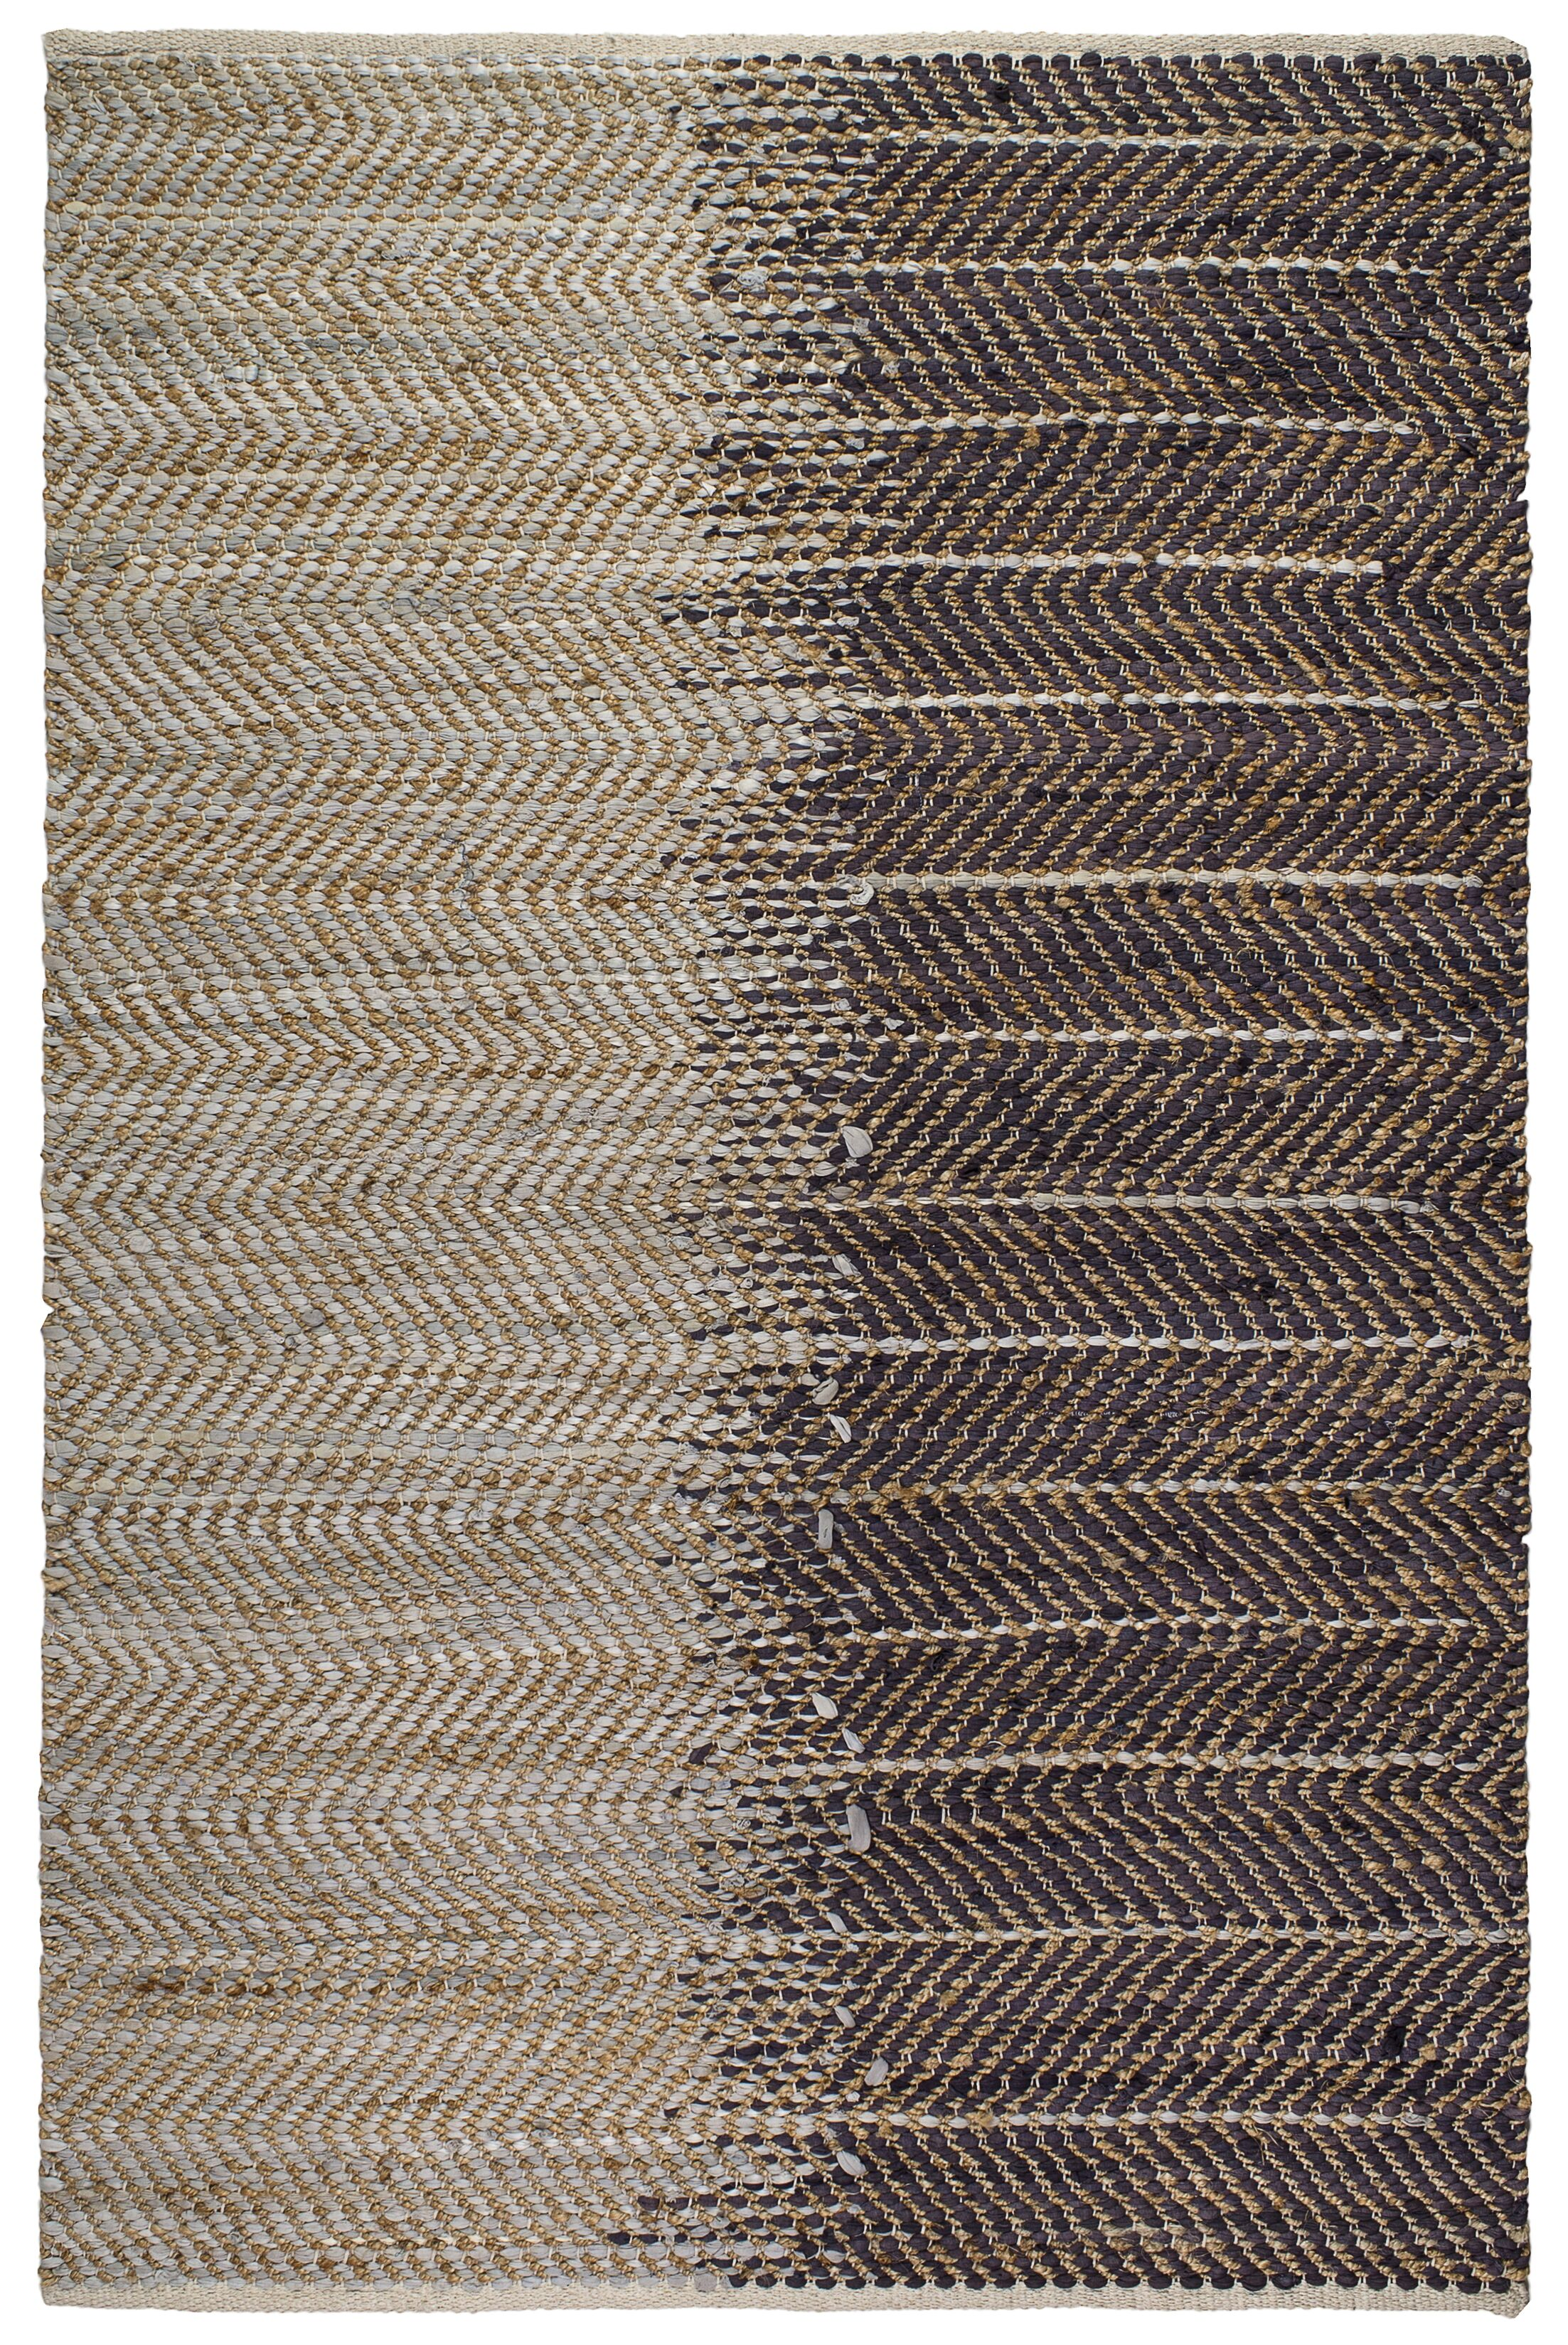 Metro Addison Hand-Woven Natural Area Rug Rug Size: 8' x 10'